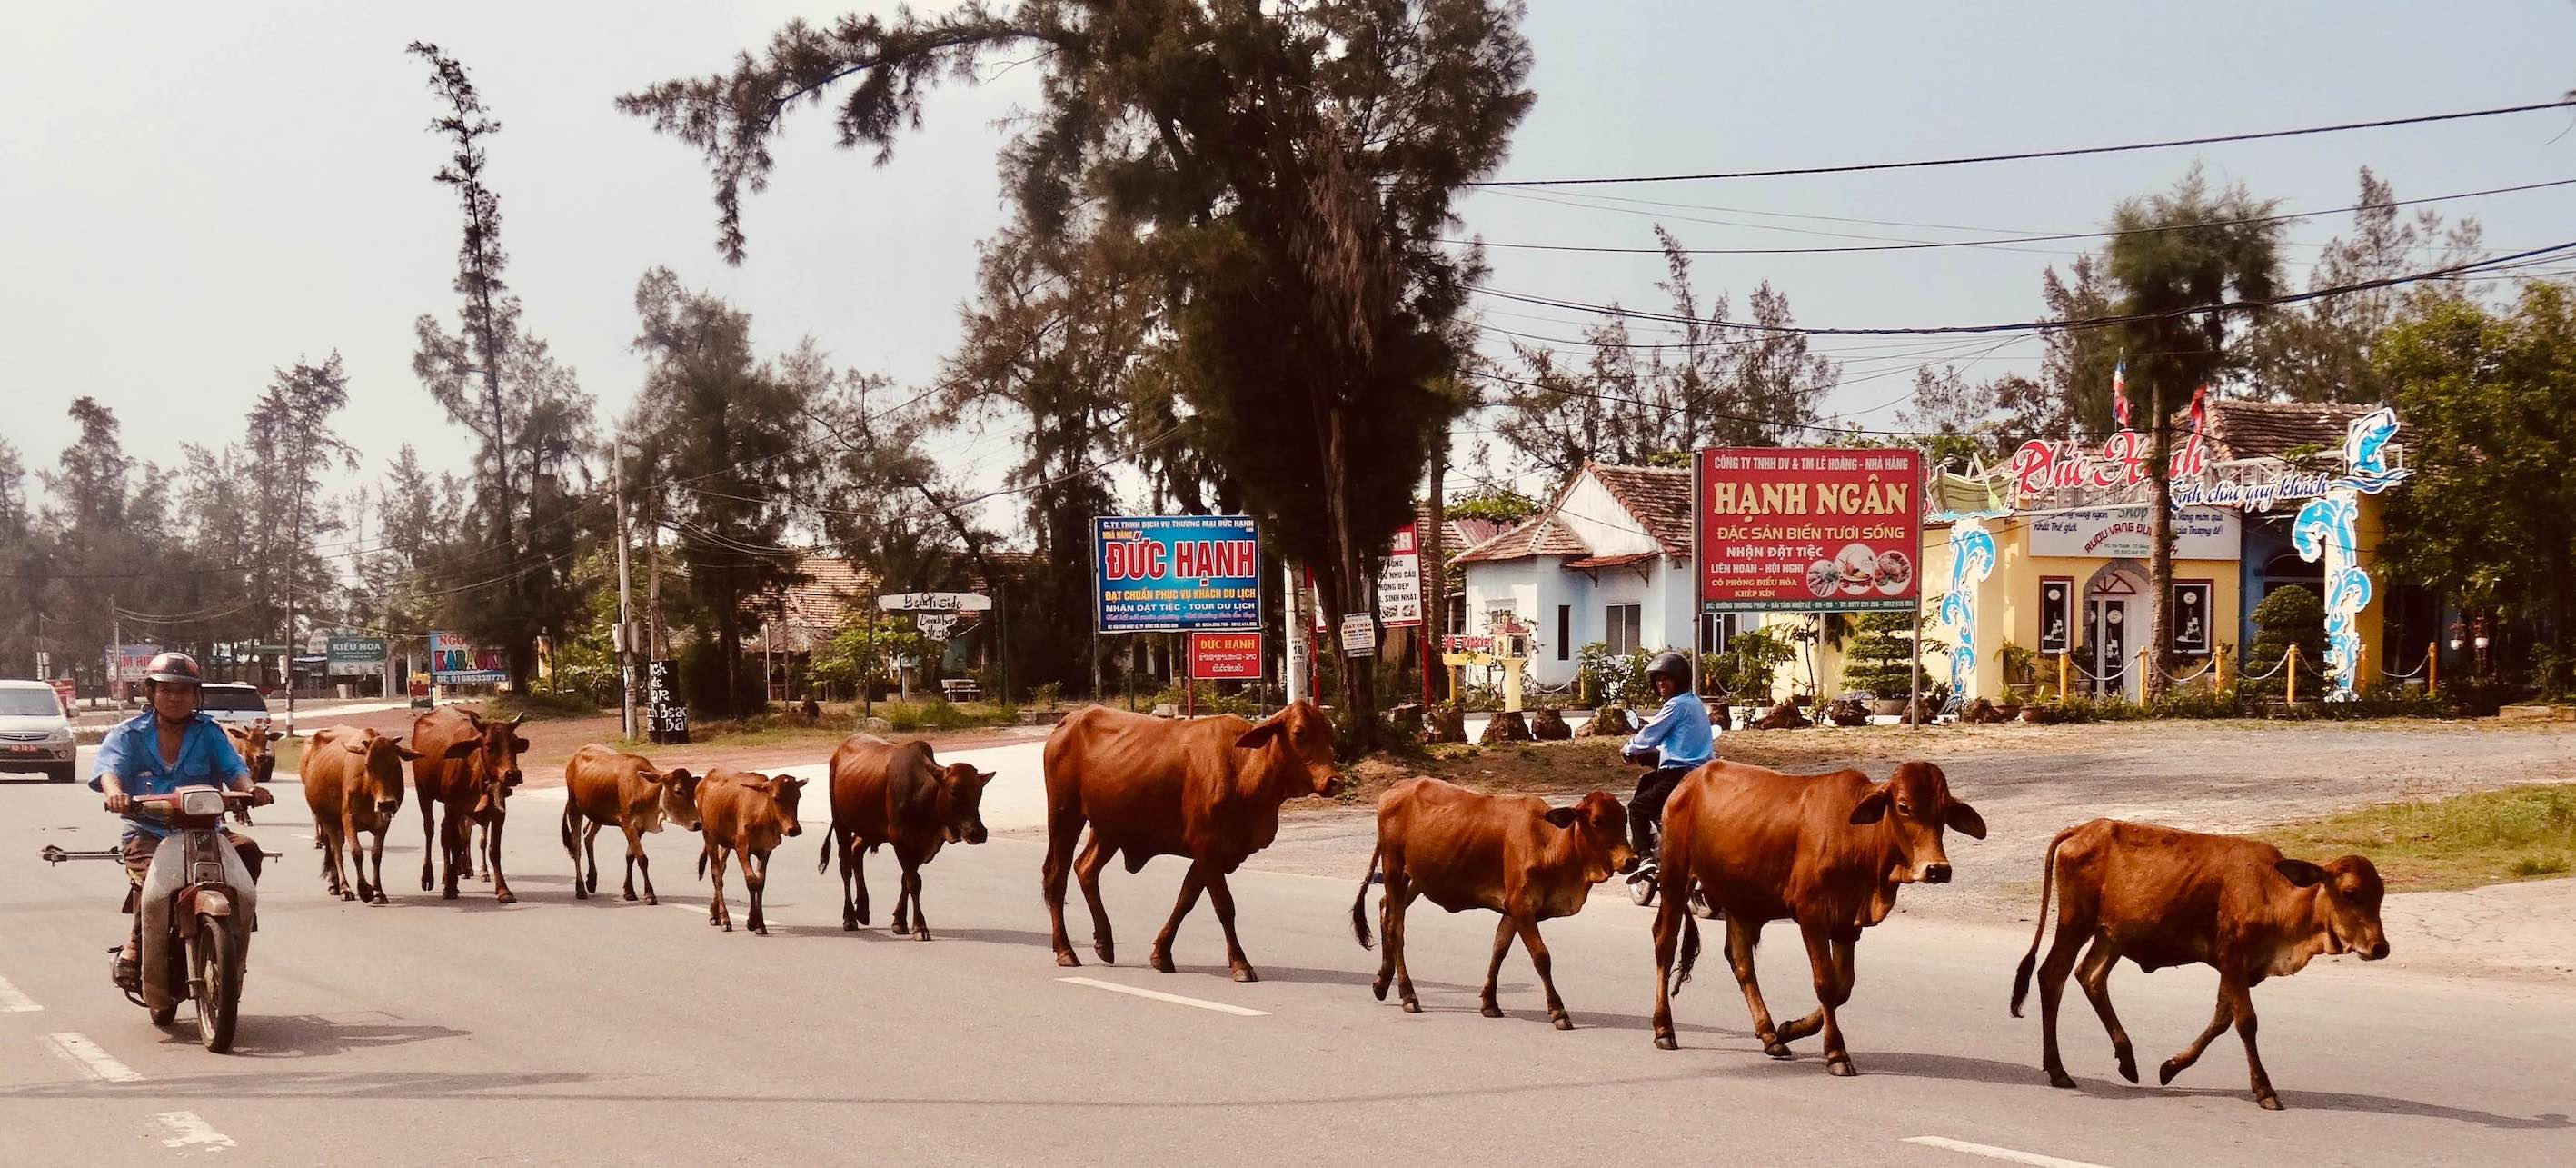 Cows in the road Dong Hoi Vietnam.